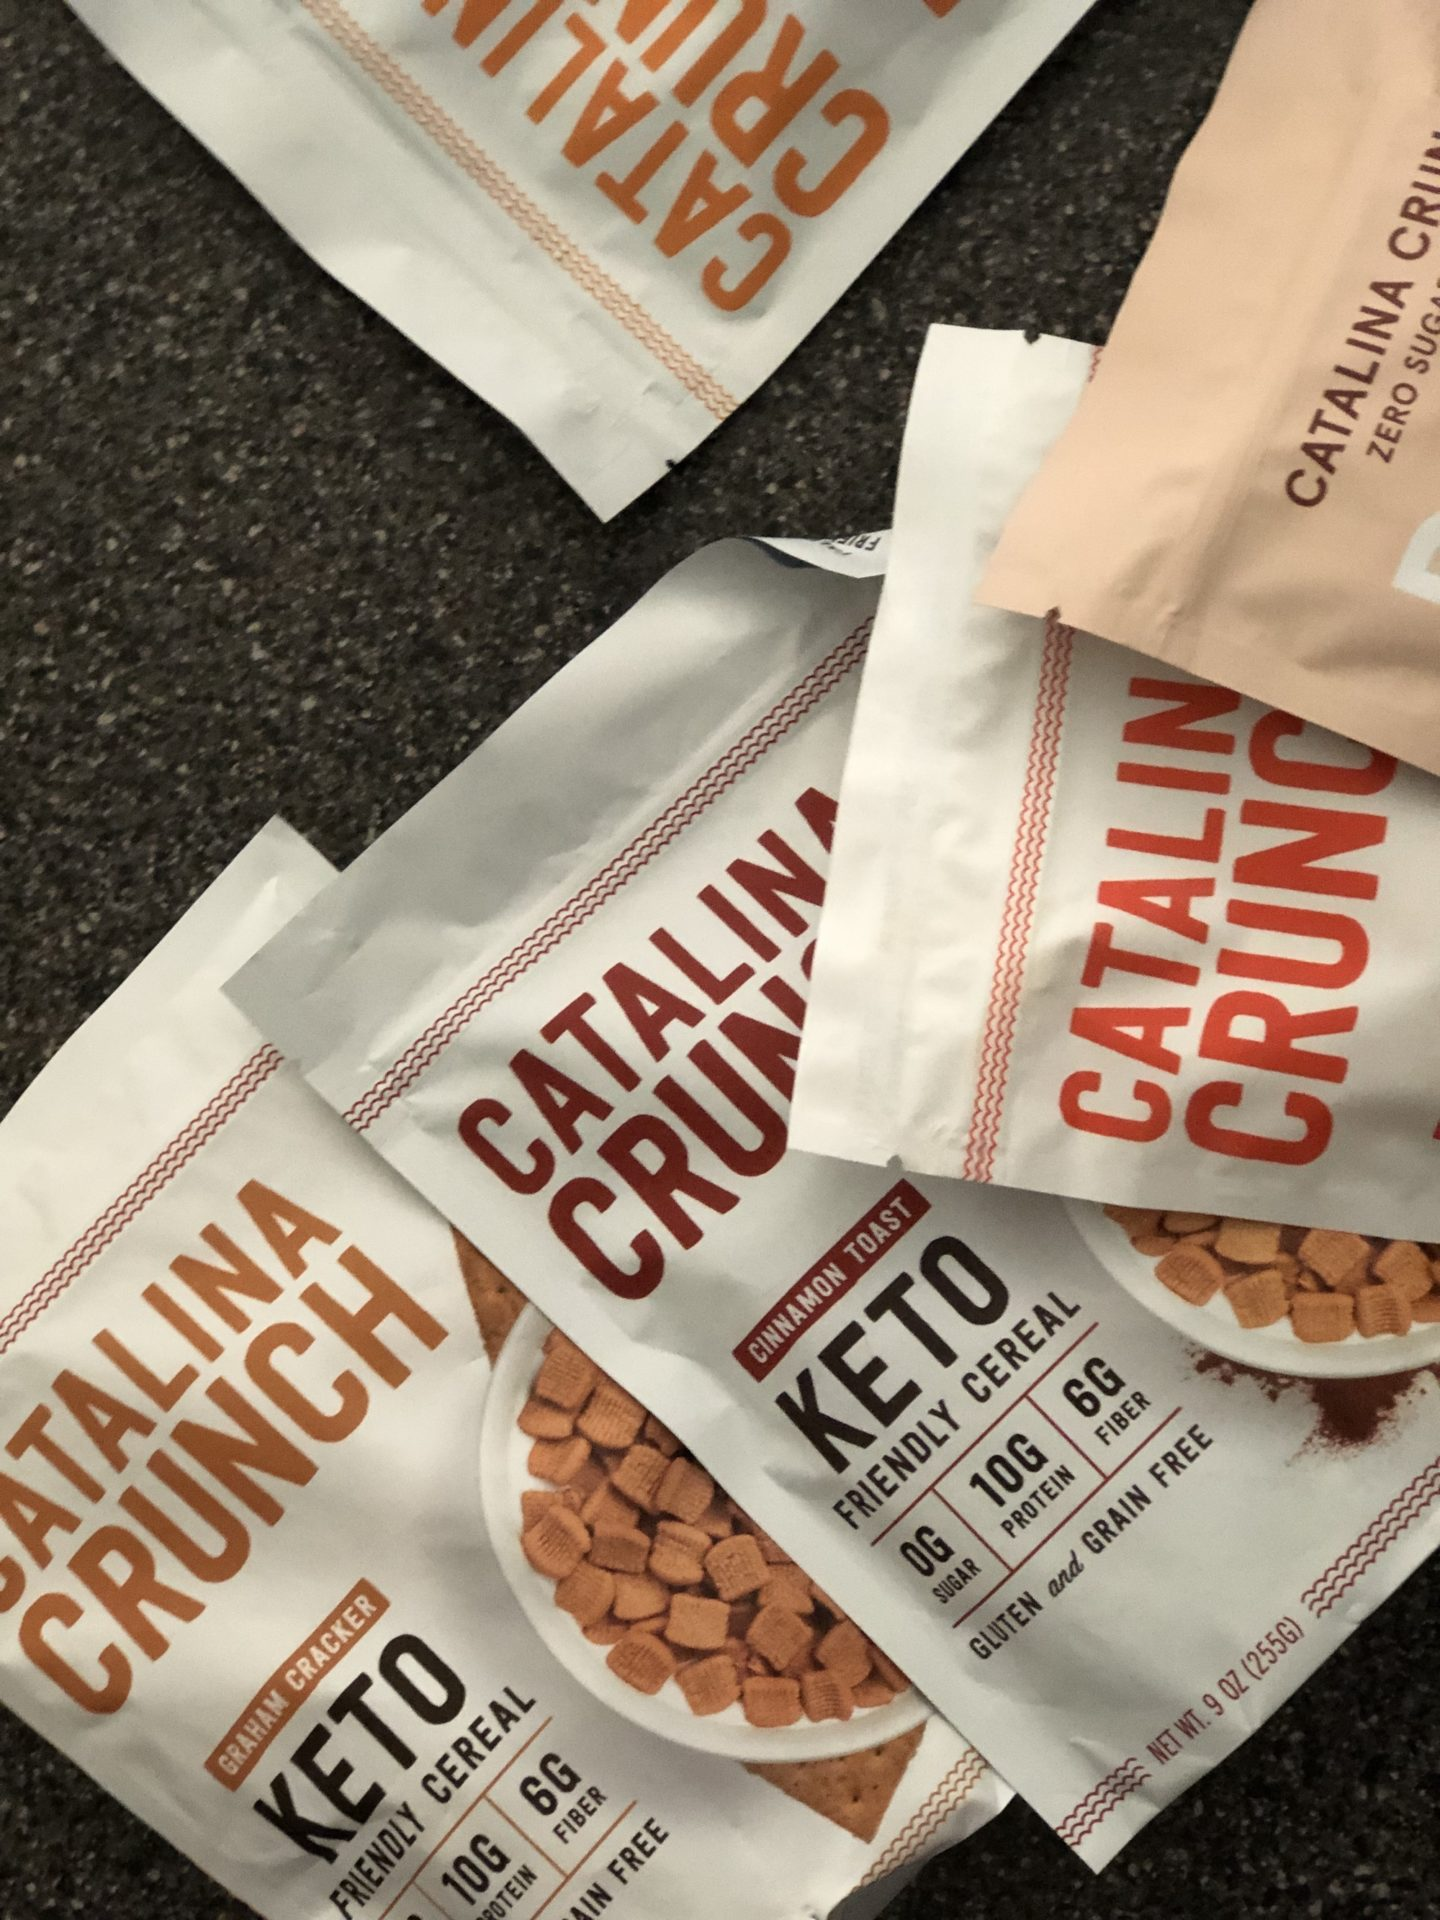 How his diabetes diagnosis led to the creation of Catalina Crunch 2